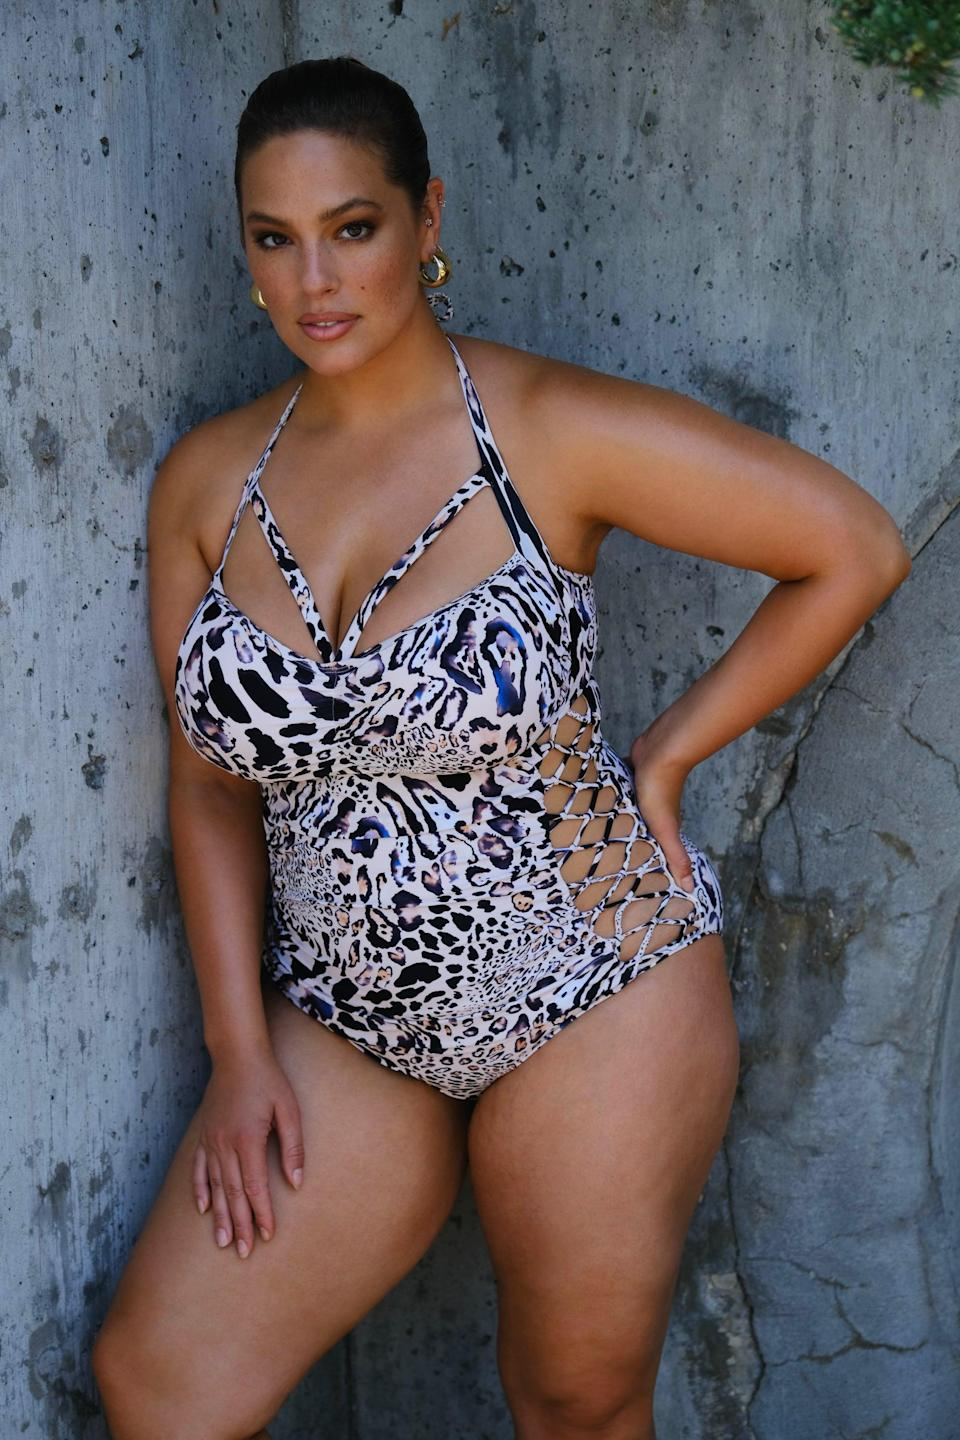 <p><span>Ashley Graham x Swimsuits For All Boss Fearless Underwire One Piece Swimsuit</span> ($64)</p>